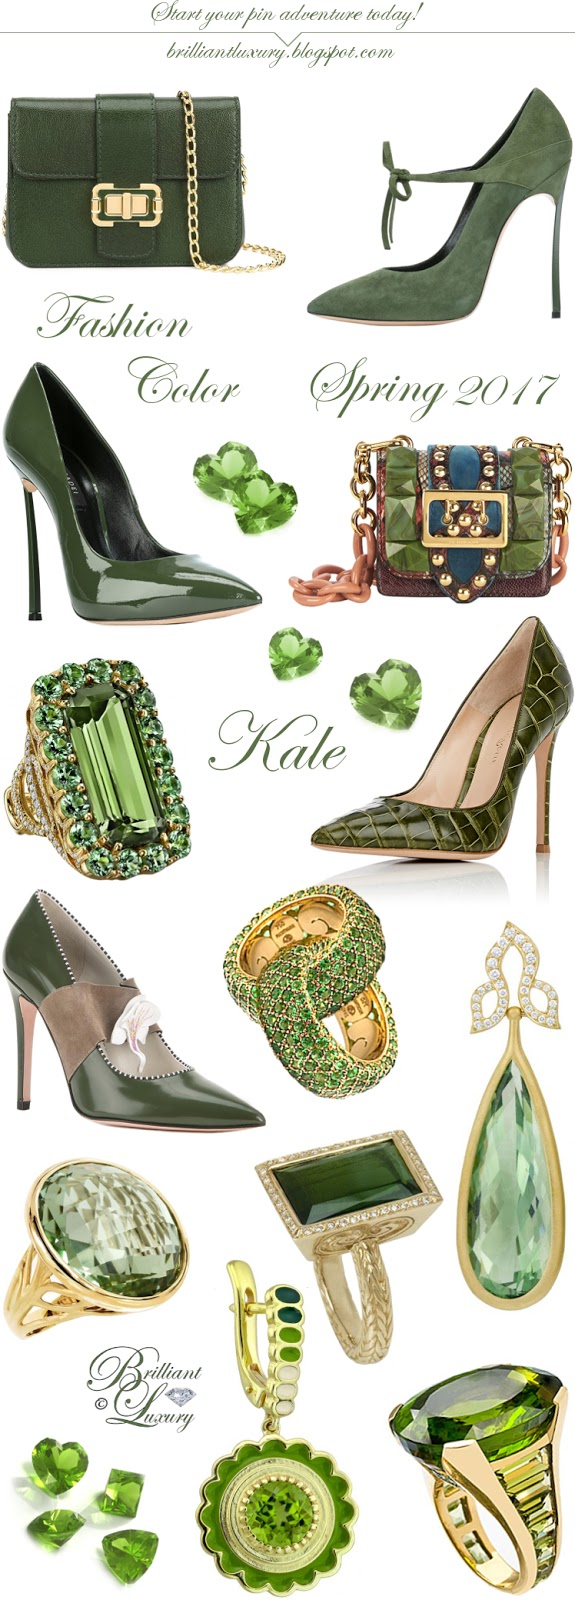 Brilliant Luxury ♦ Fashion Color Spring 2017 ~ kale